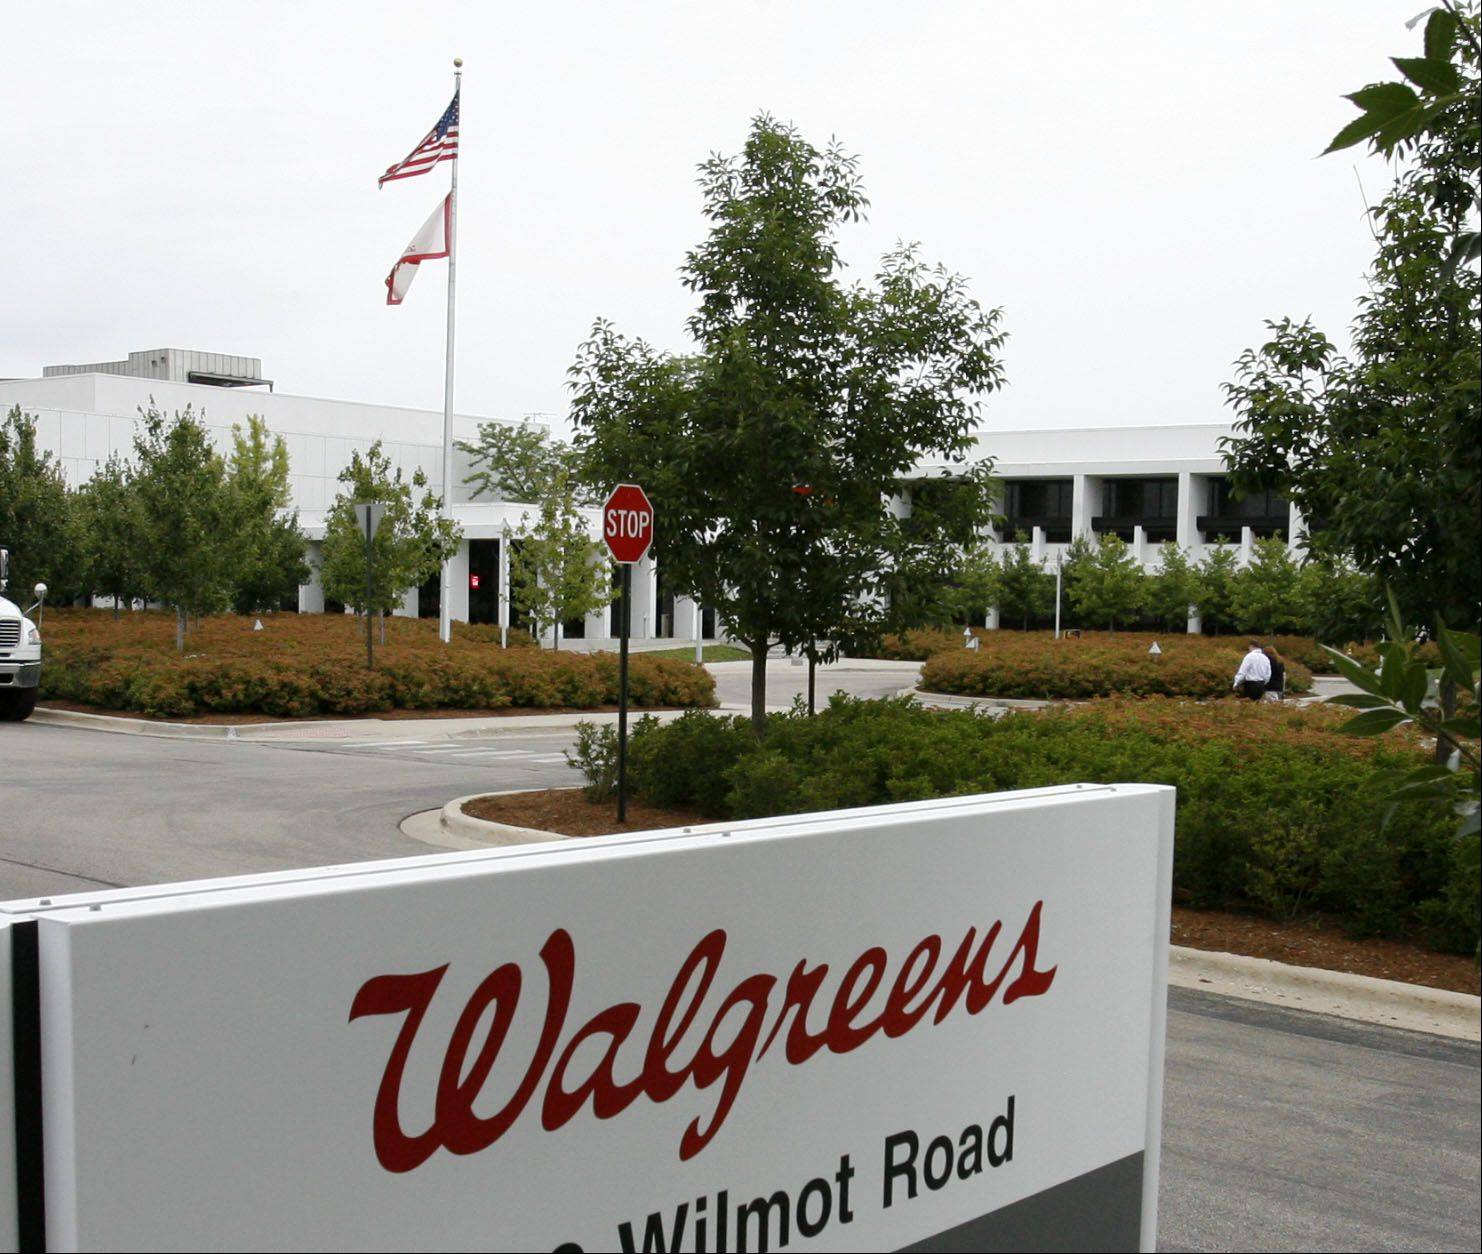 Walgreen to expand in suburbs, add 500 jobs